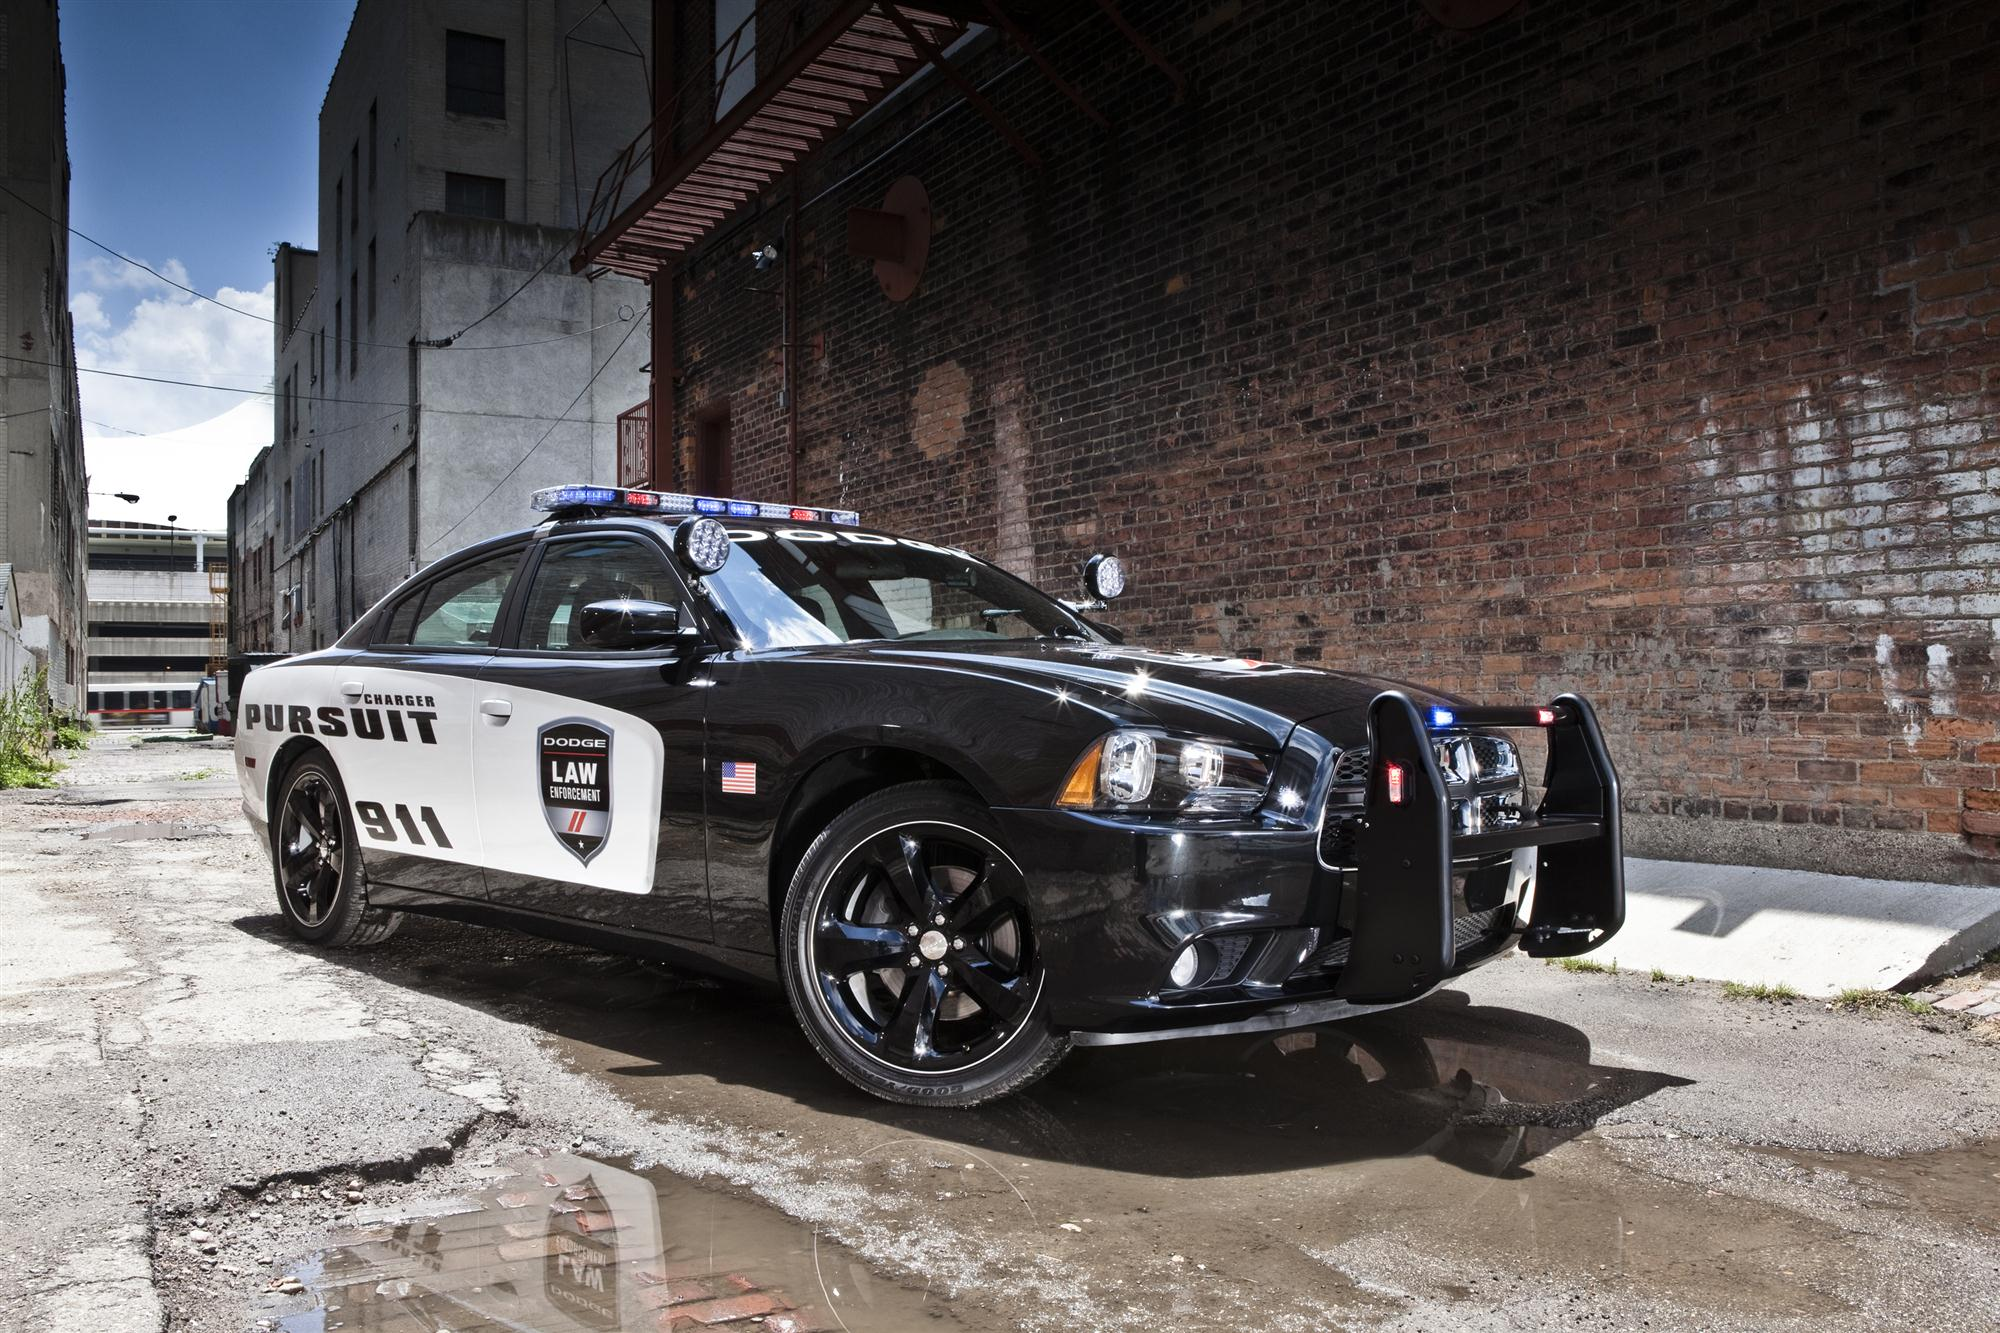 charger police trunk on 2012 dodge charger police package wiring 2012 dodge charger pursuit police car gets mopar accessories charger police trunk on 2012 dodge charger police package wiring